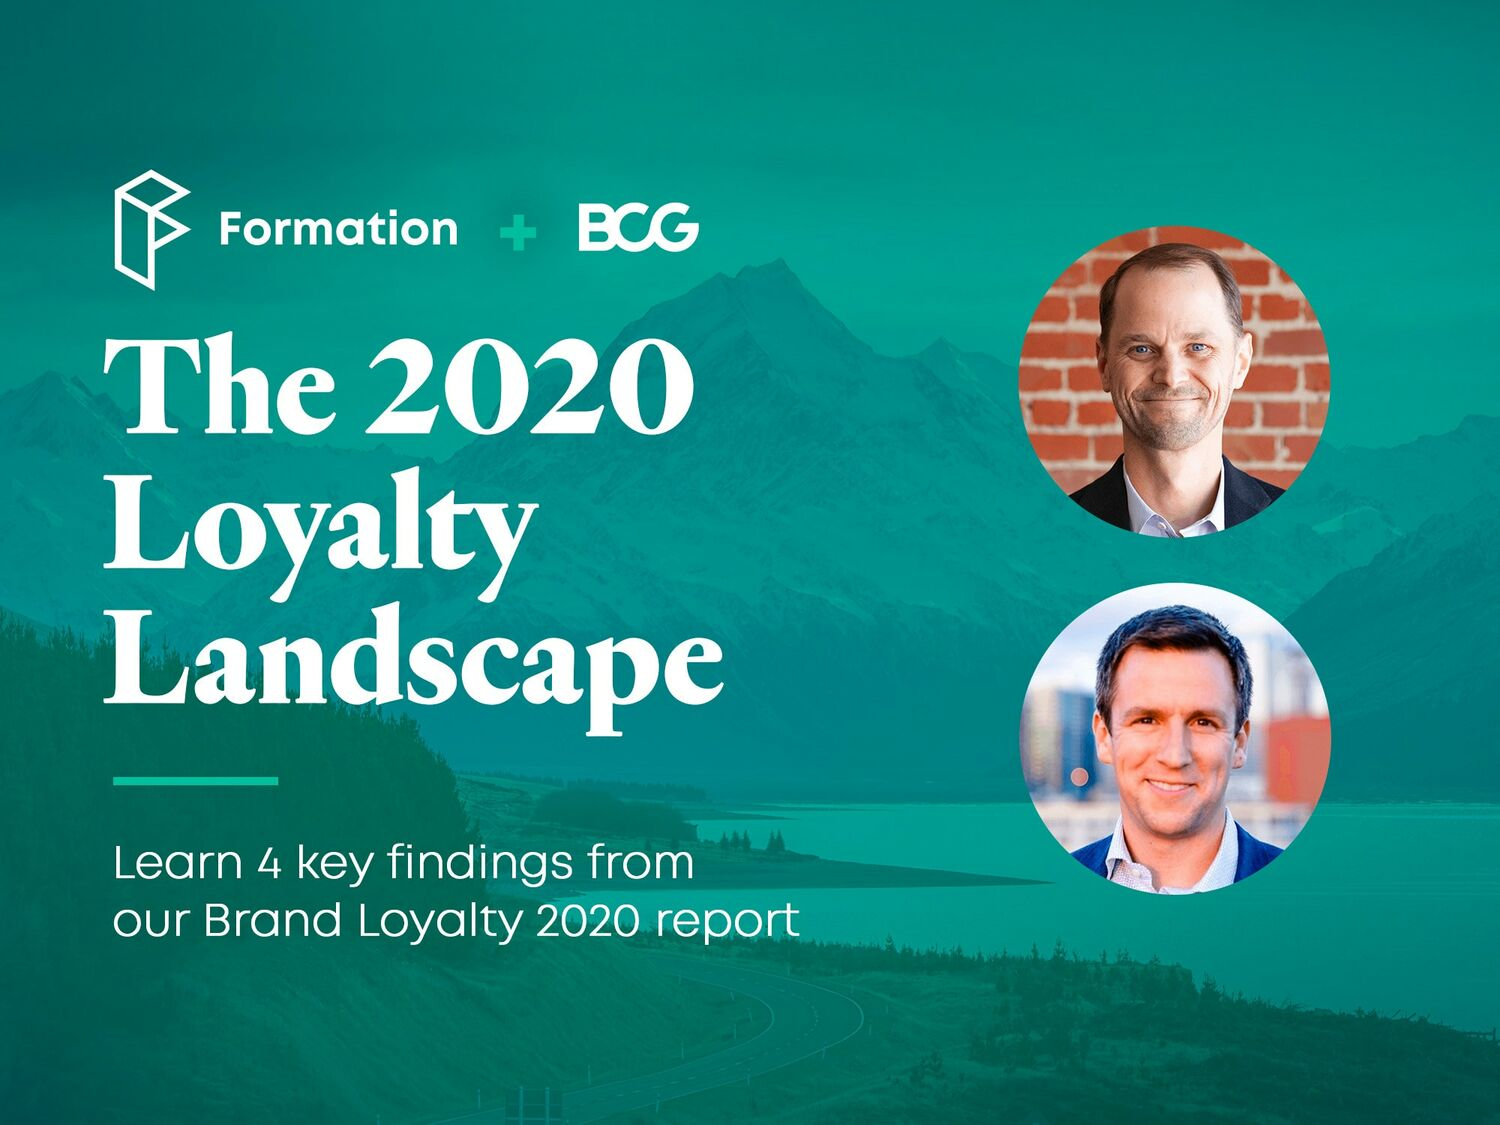 Webinar Featuring BCG: The Customer Loyalty Landscape in 2020